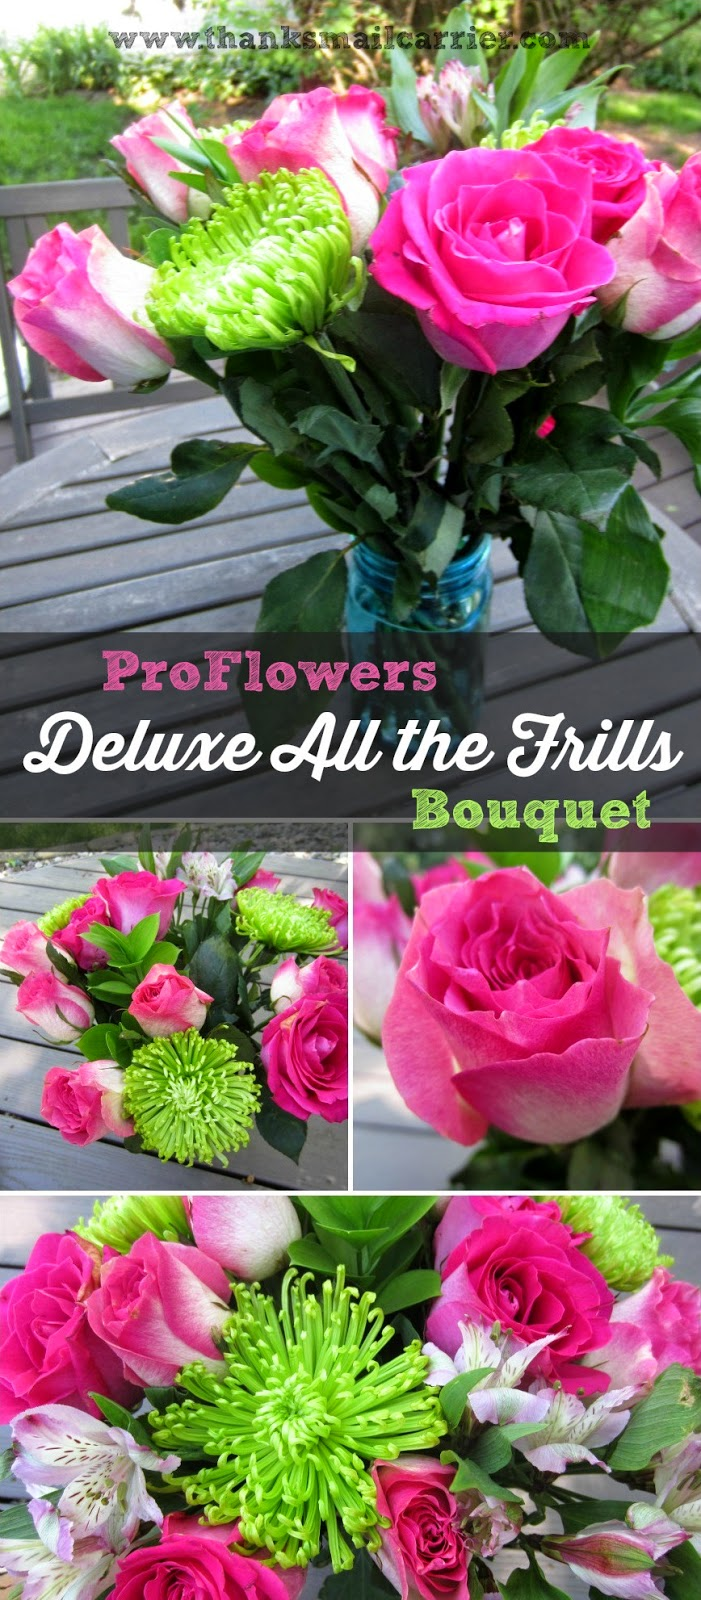 ProFlowers deluxe bouquet